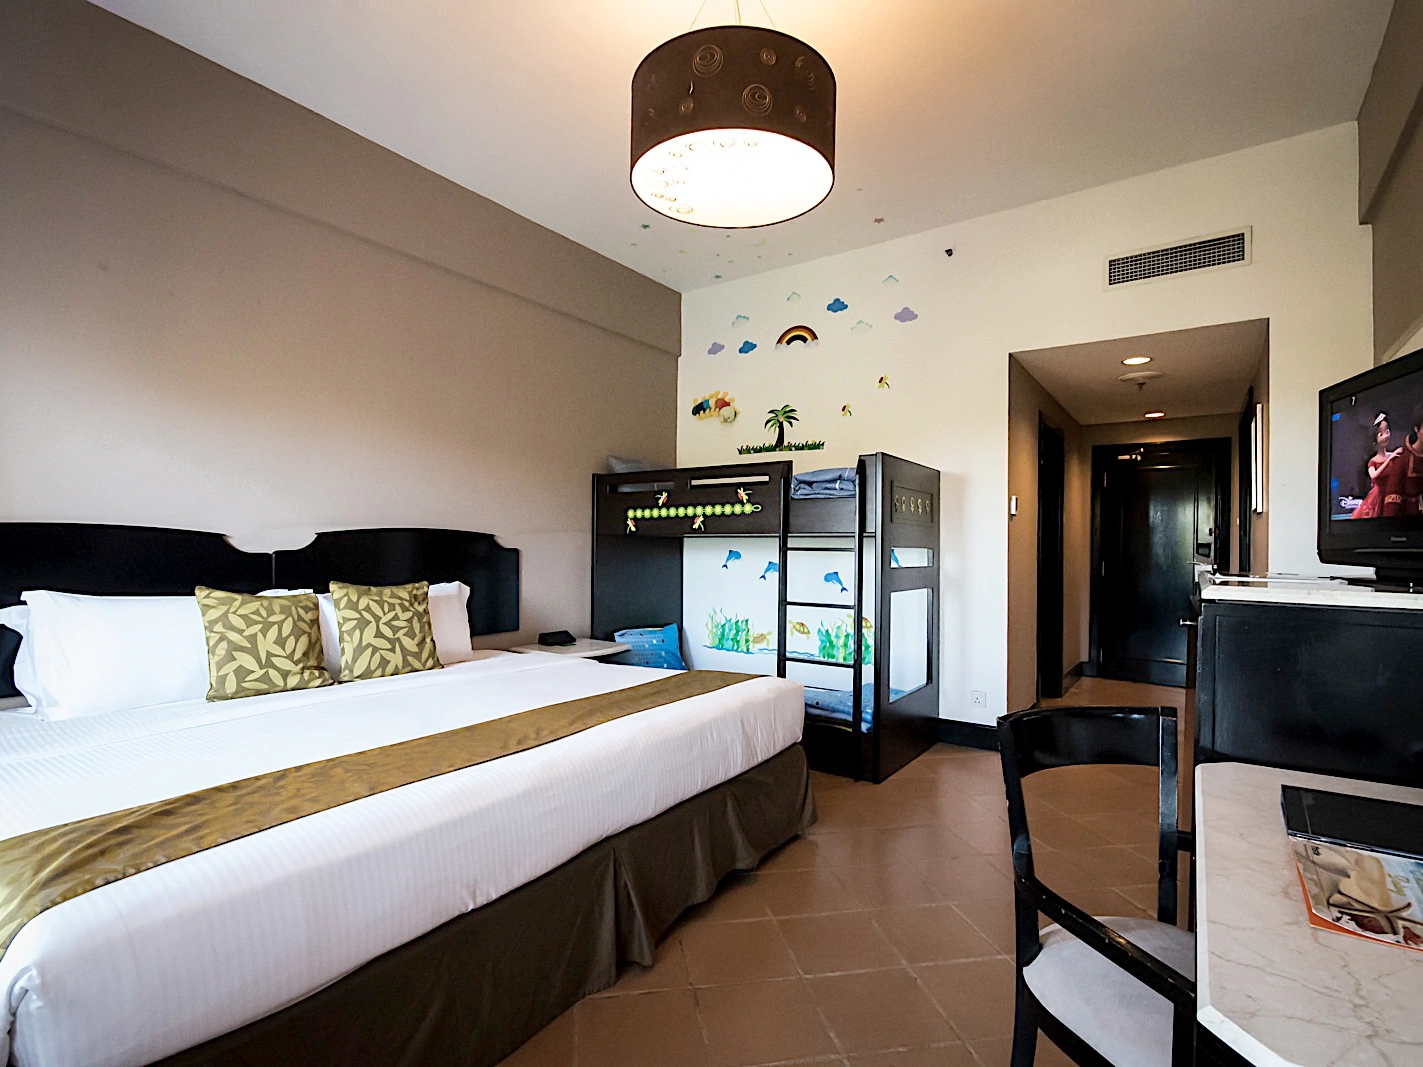 The Thistle Family Deluxe Room with one king bed, a double decker bed, a desk, a chair and flat- screen TV at the Thistle Port Dickson Resort